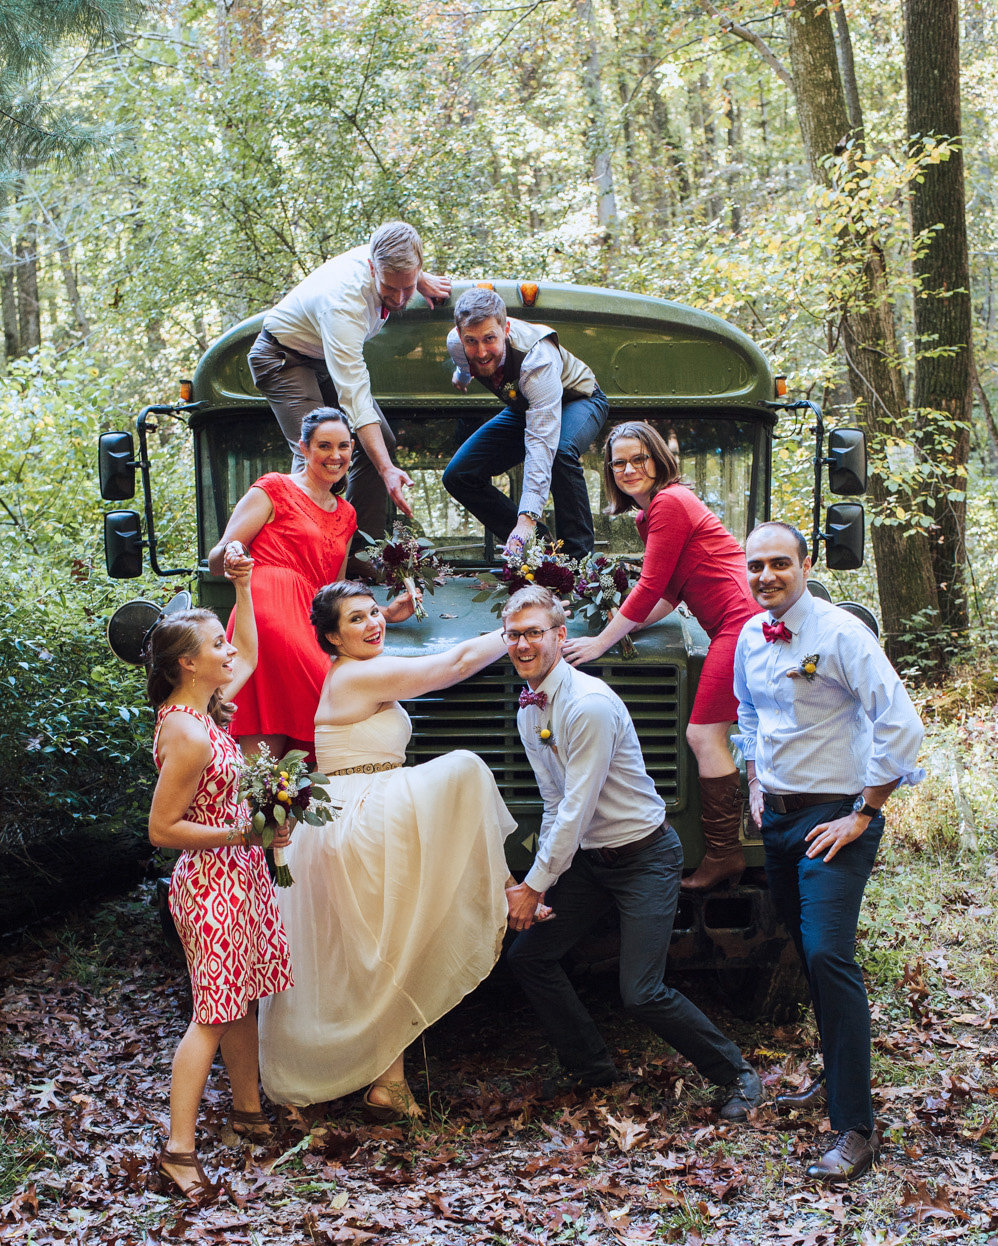 wedding party poses for portrait at rustic camp wedding